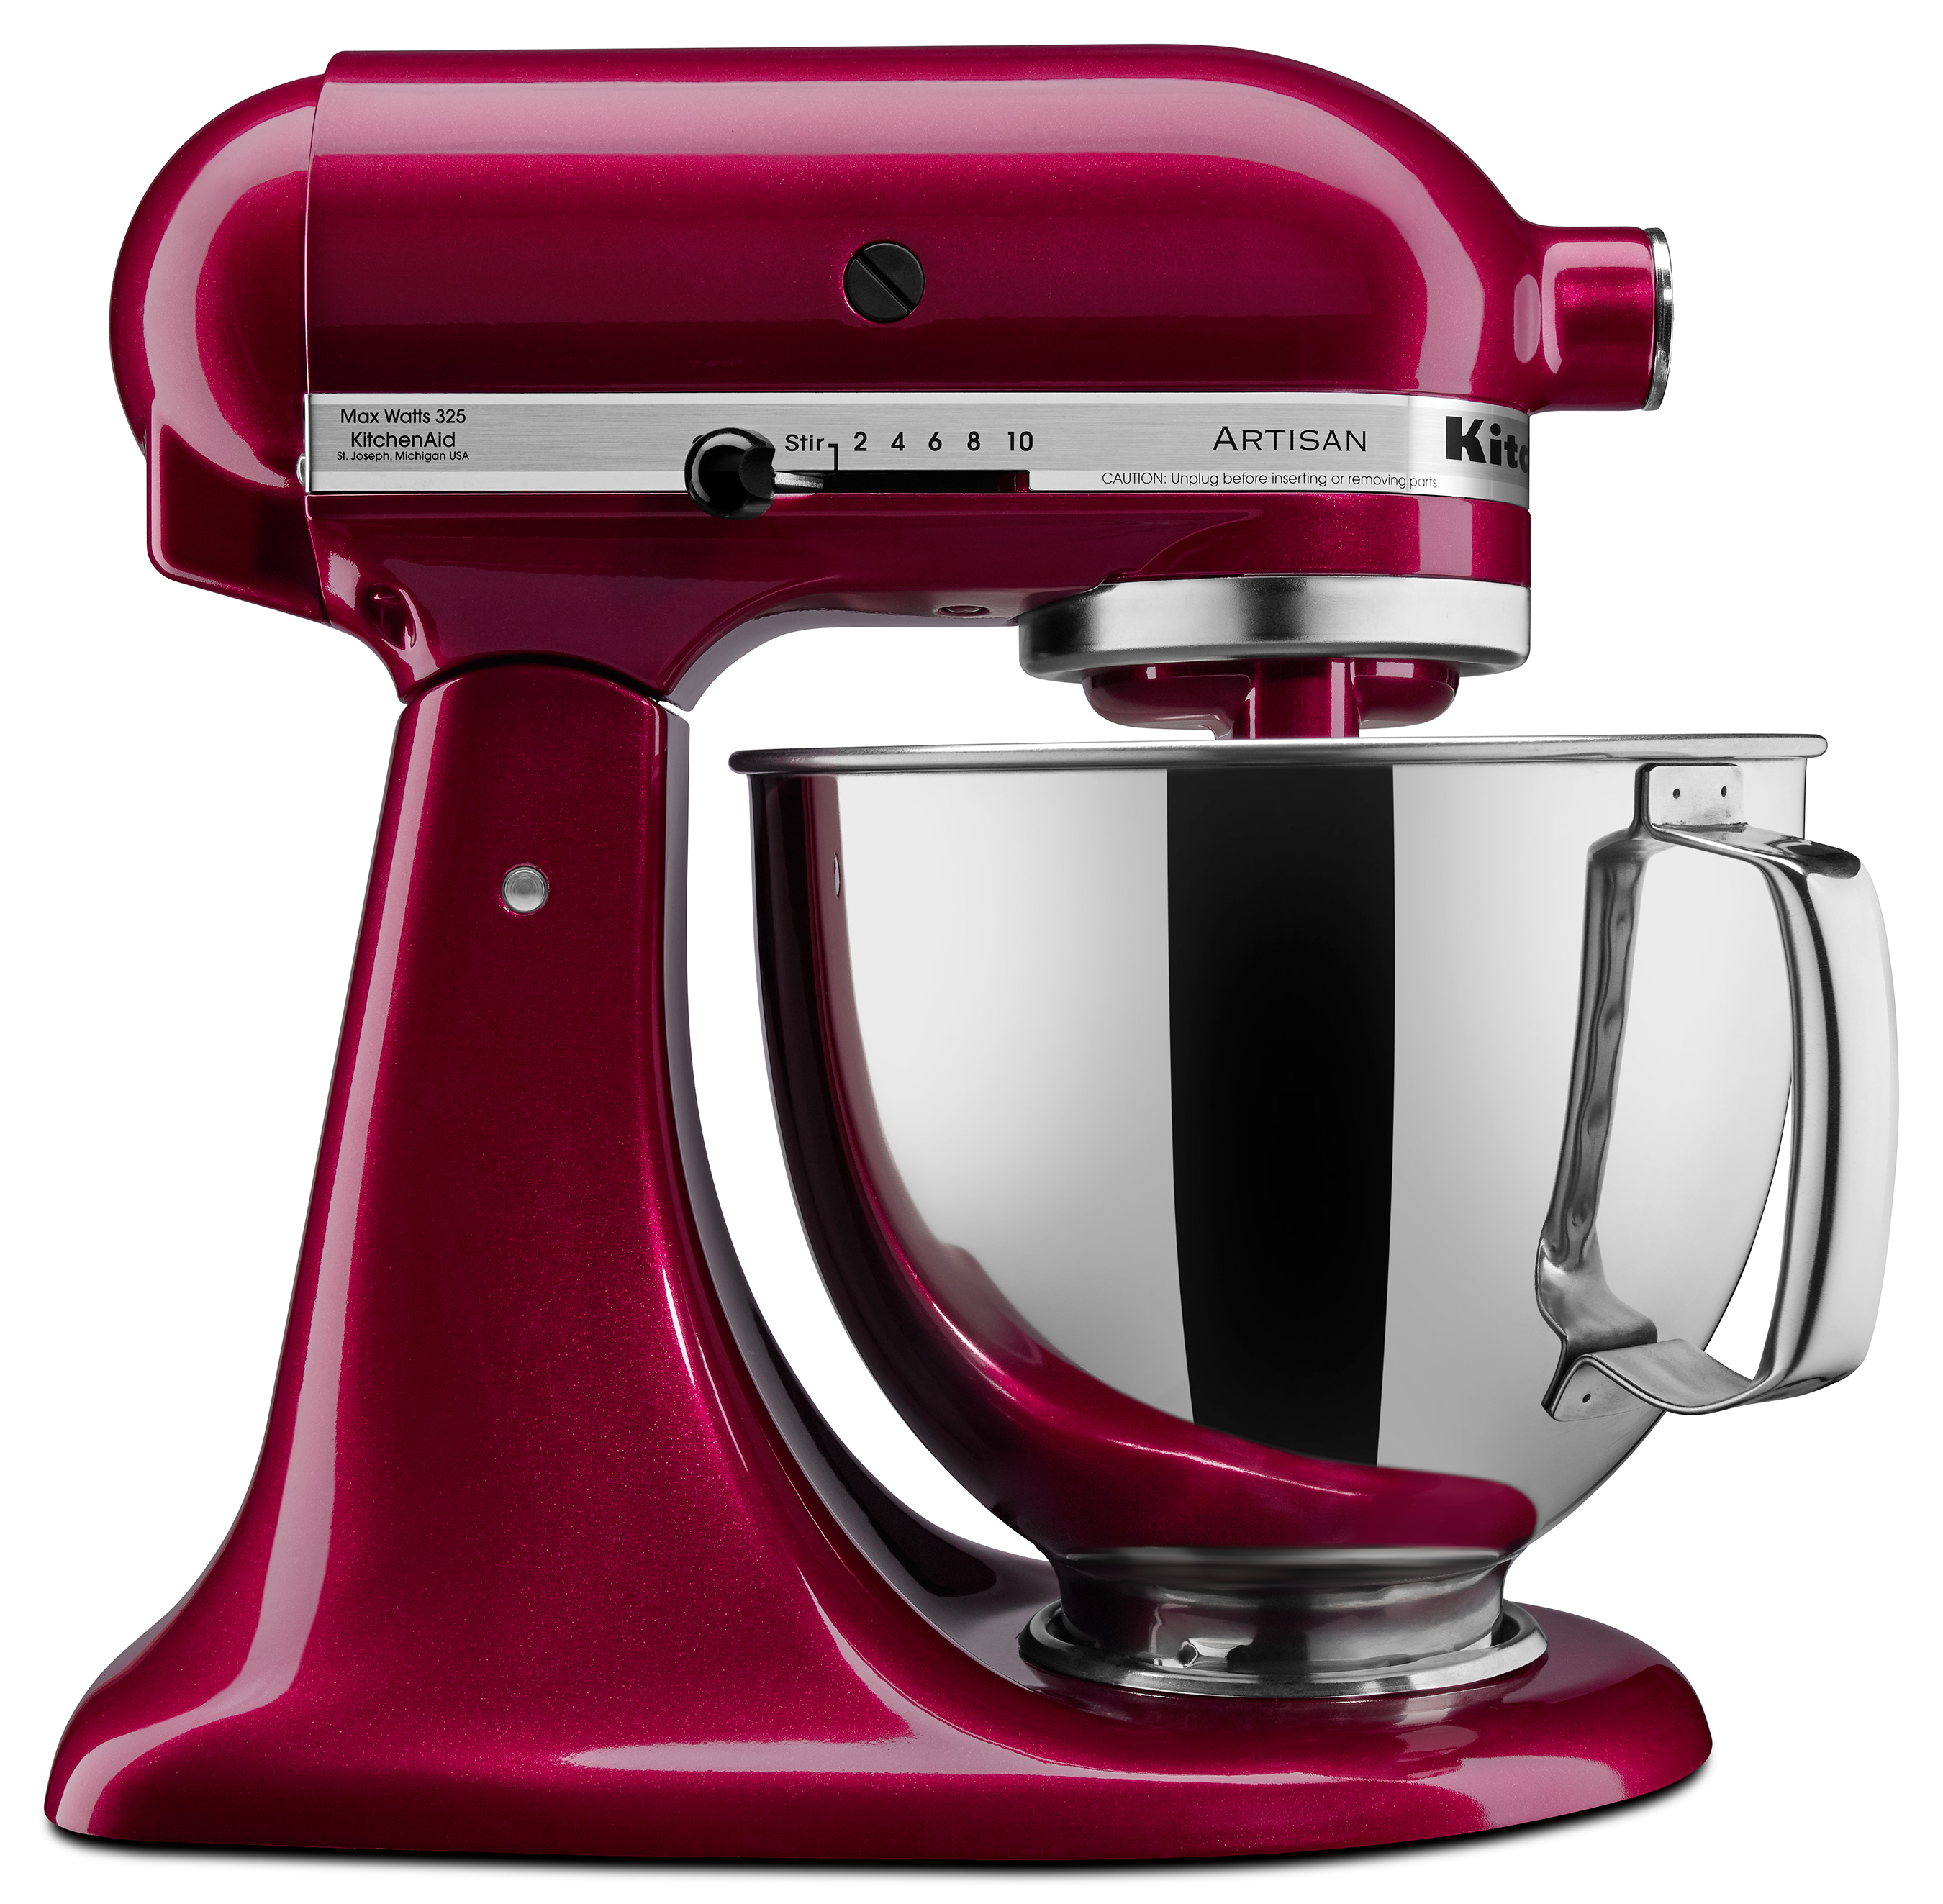 The Bordeaux stand mixer is a blue-based red hue that is both timeless and glamorous. It will be available for the Artisan® Series stand mixer $429.99 beginning in September.